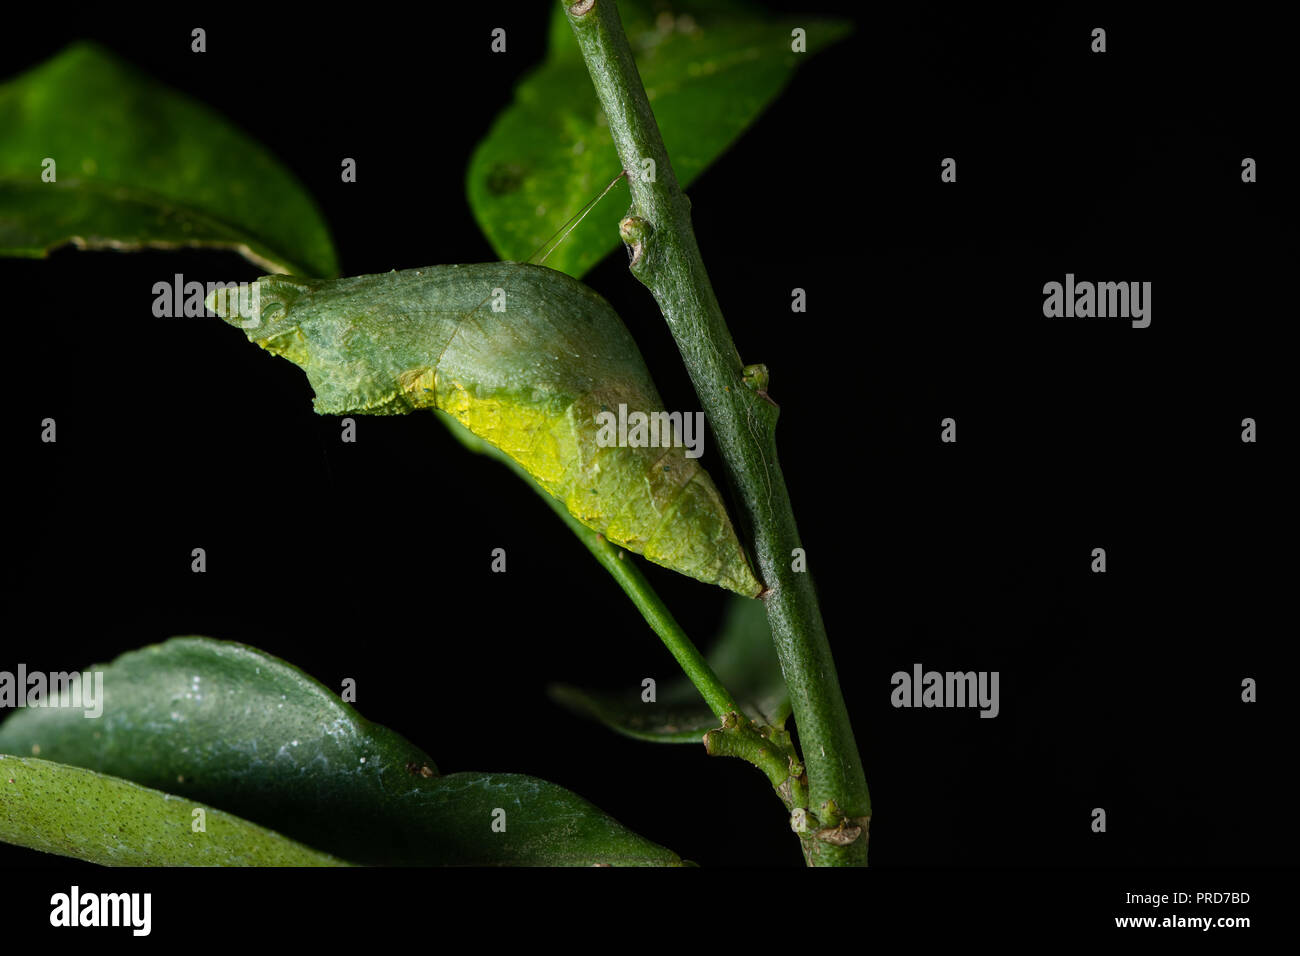 One day old of Lime Swallowtail butterfly during pupal stage to become a butterfly - Stock Image